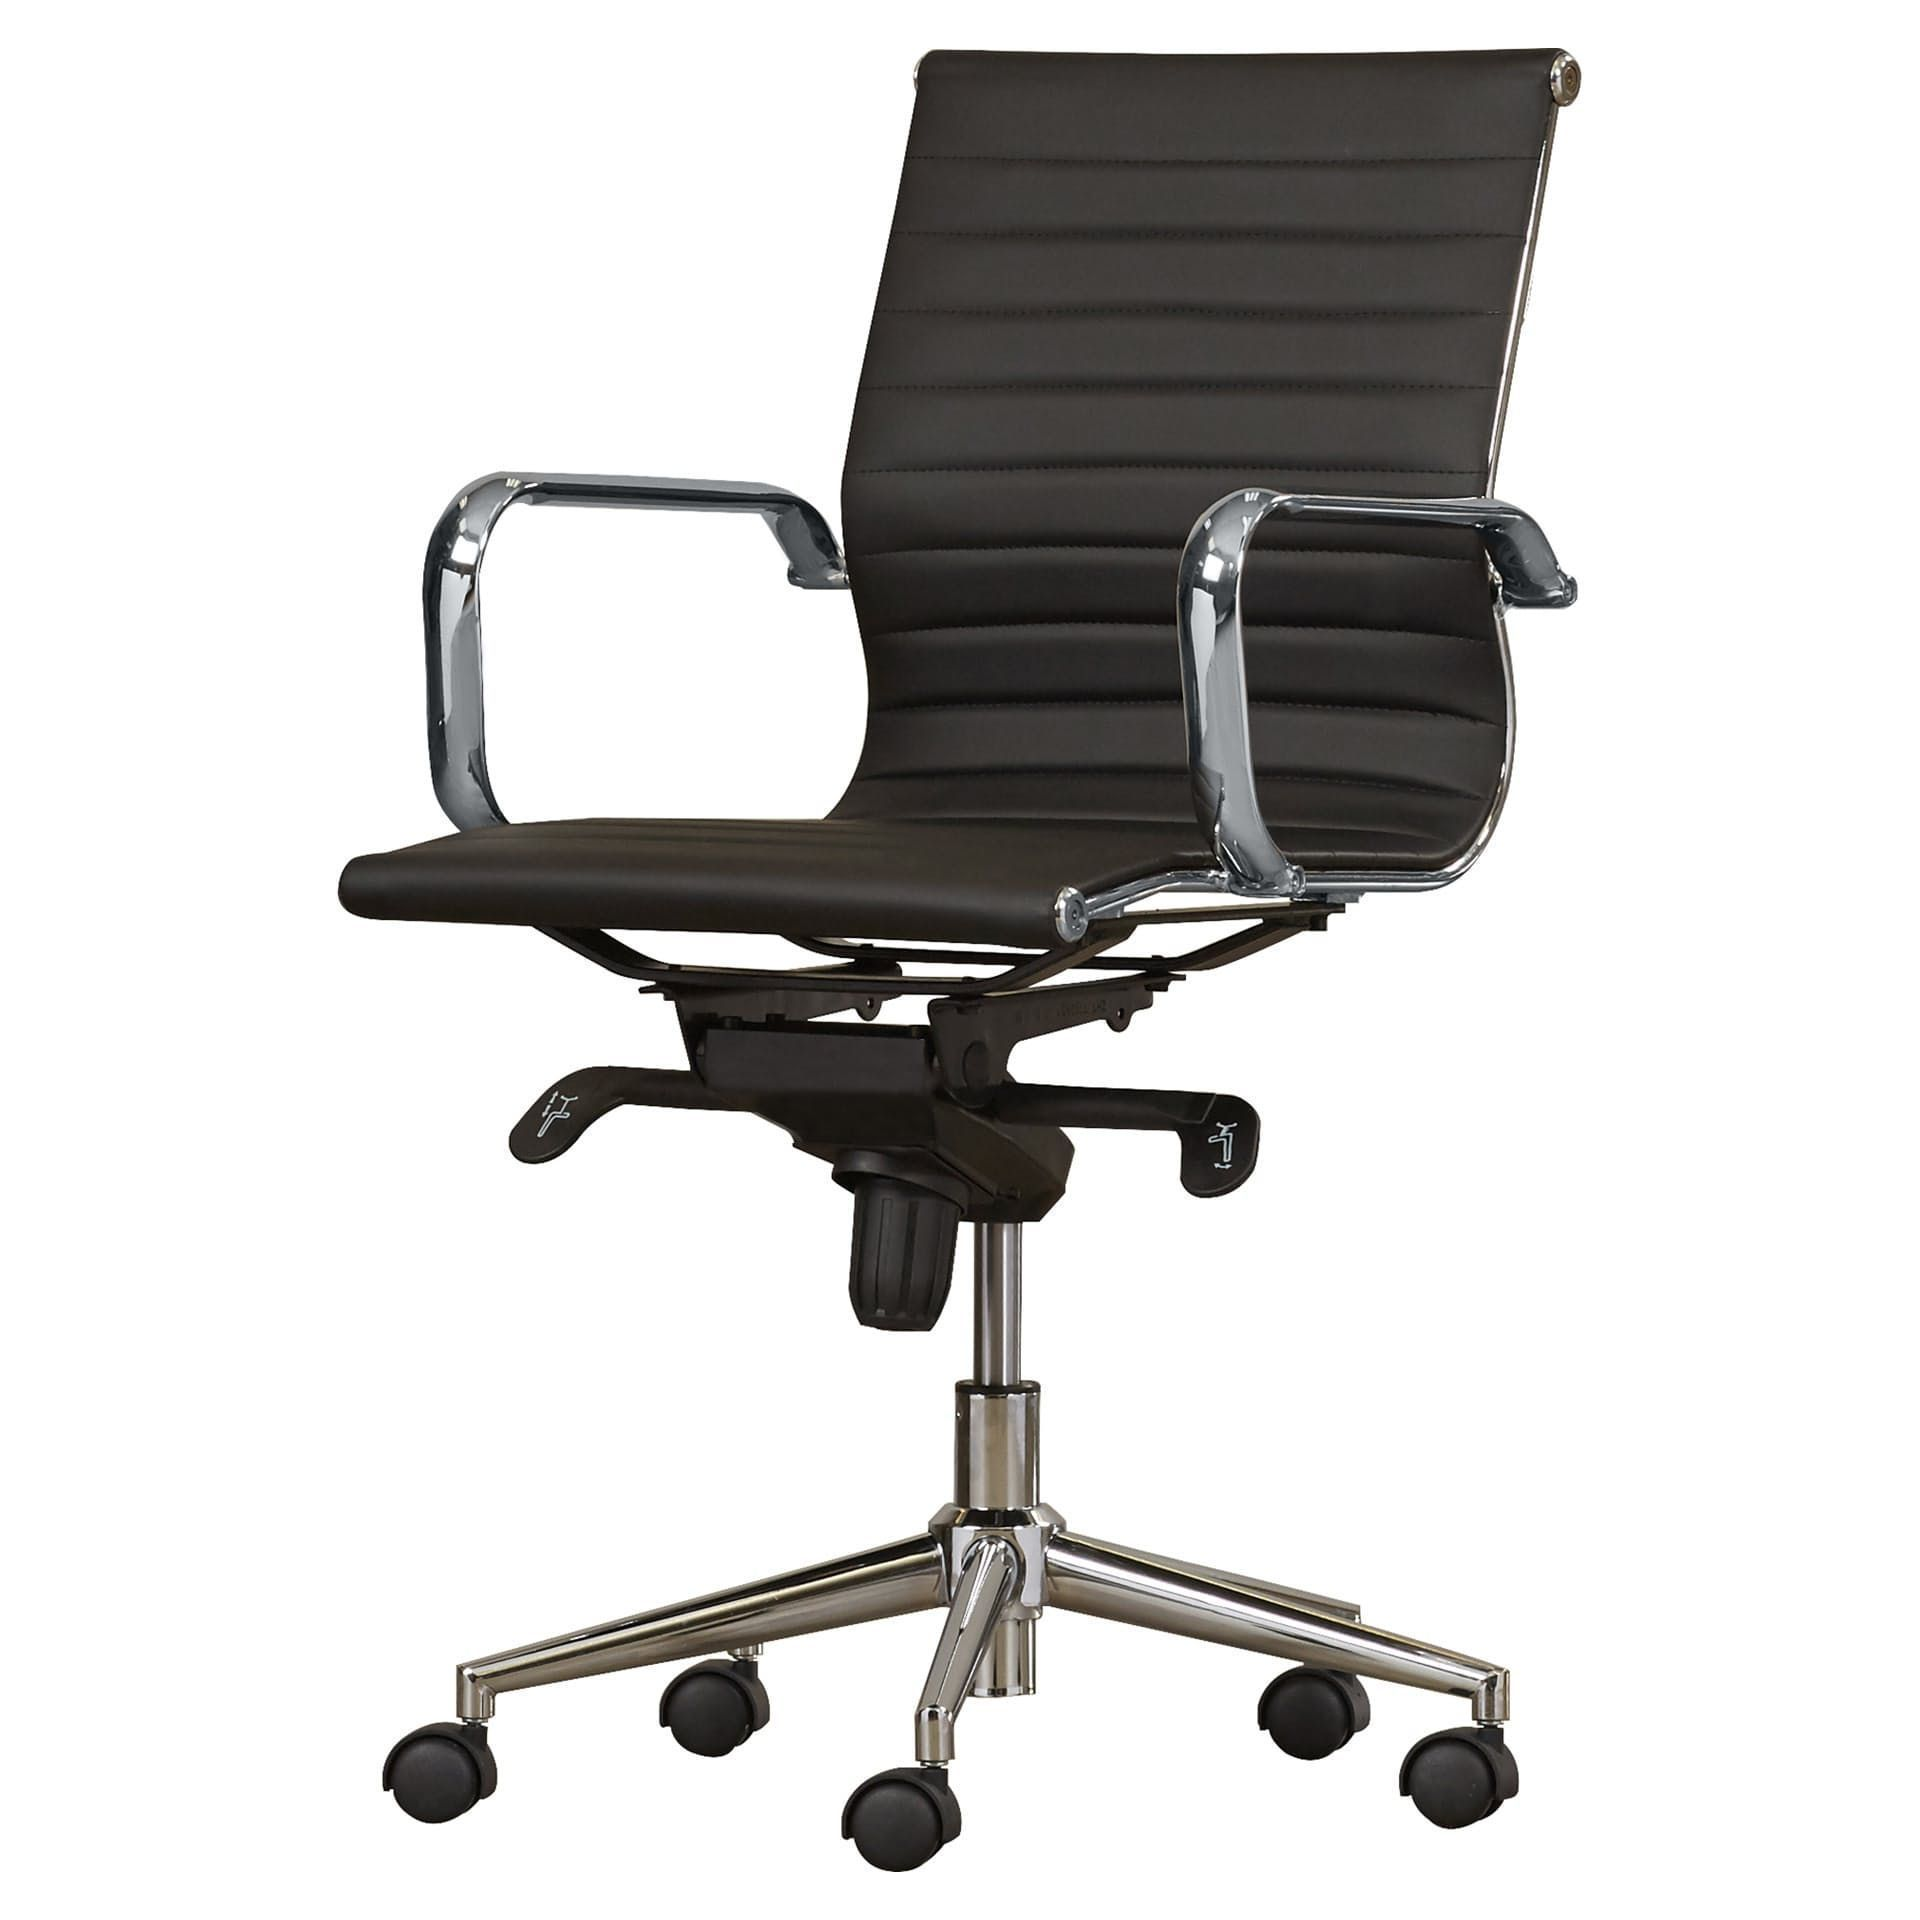 10 Surprisingly Stylish Ergonomic Office Chairs Annual Guide 2017 #Ergonomicofficechairstylish